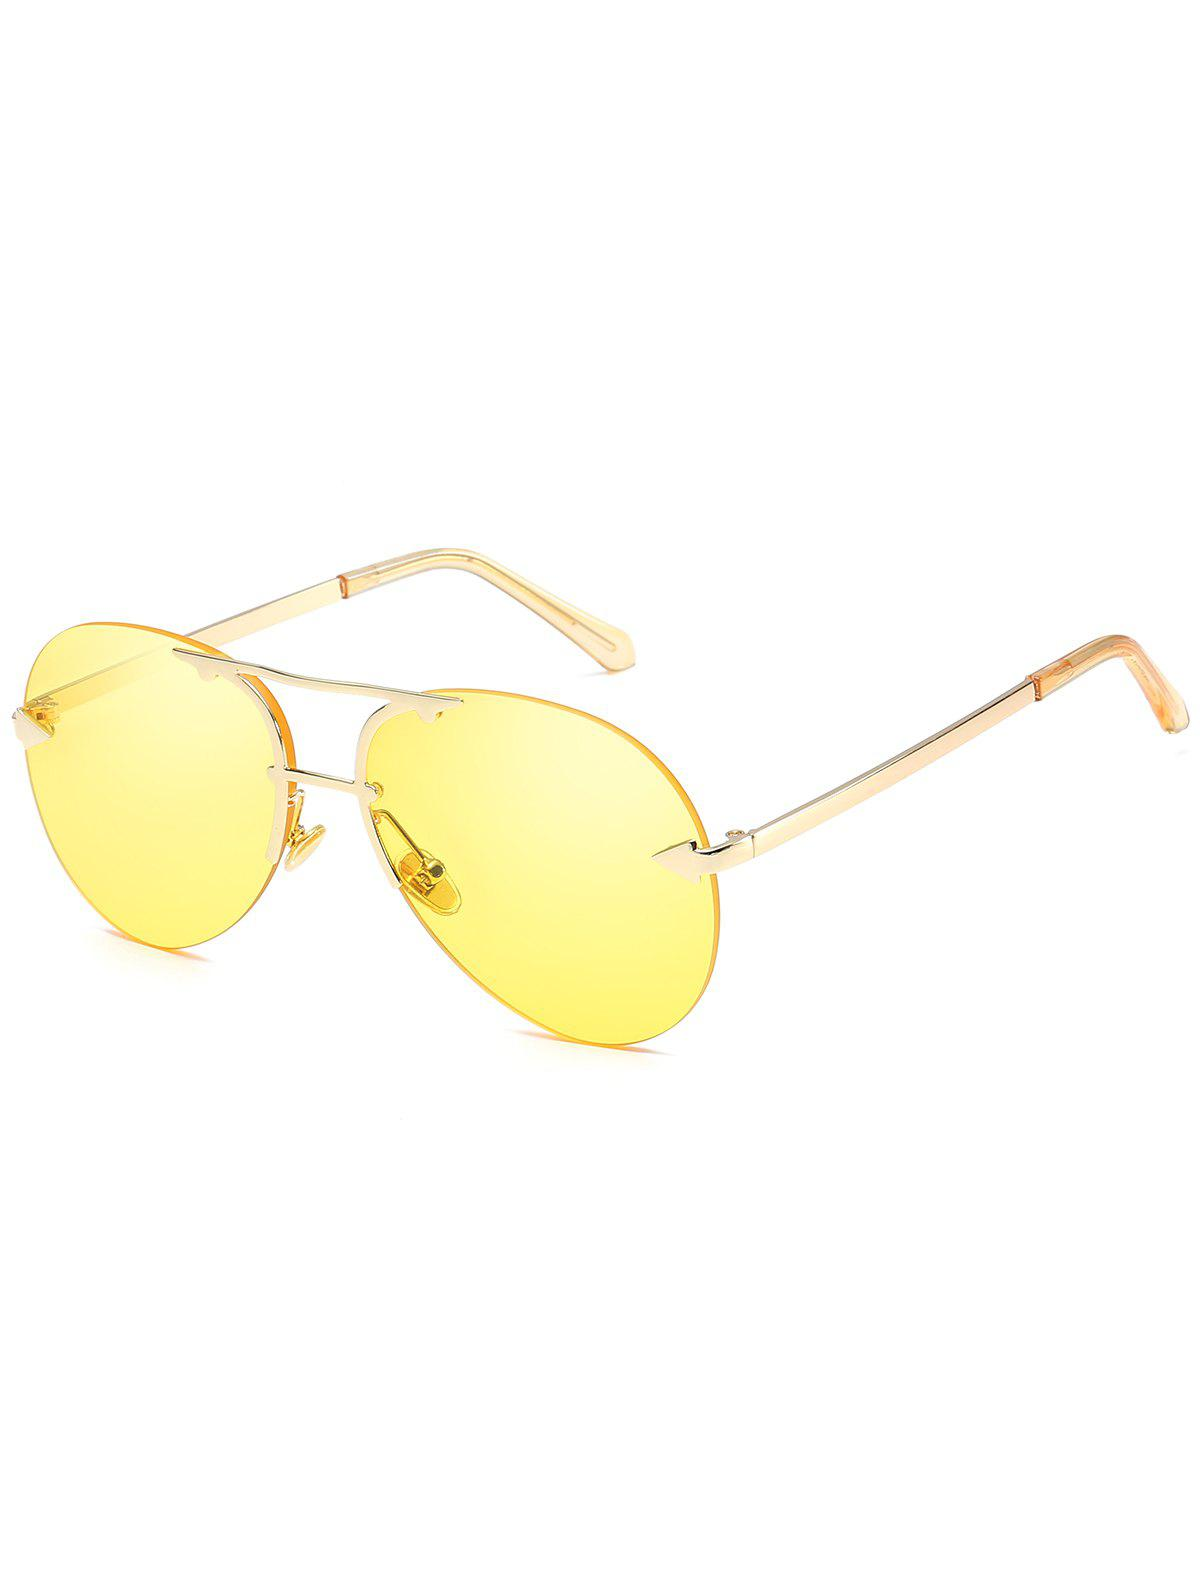 Shops Stylish Crossbar Rimless Sun Shades Sunglasses